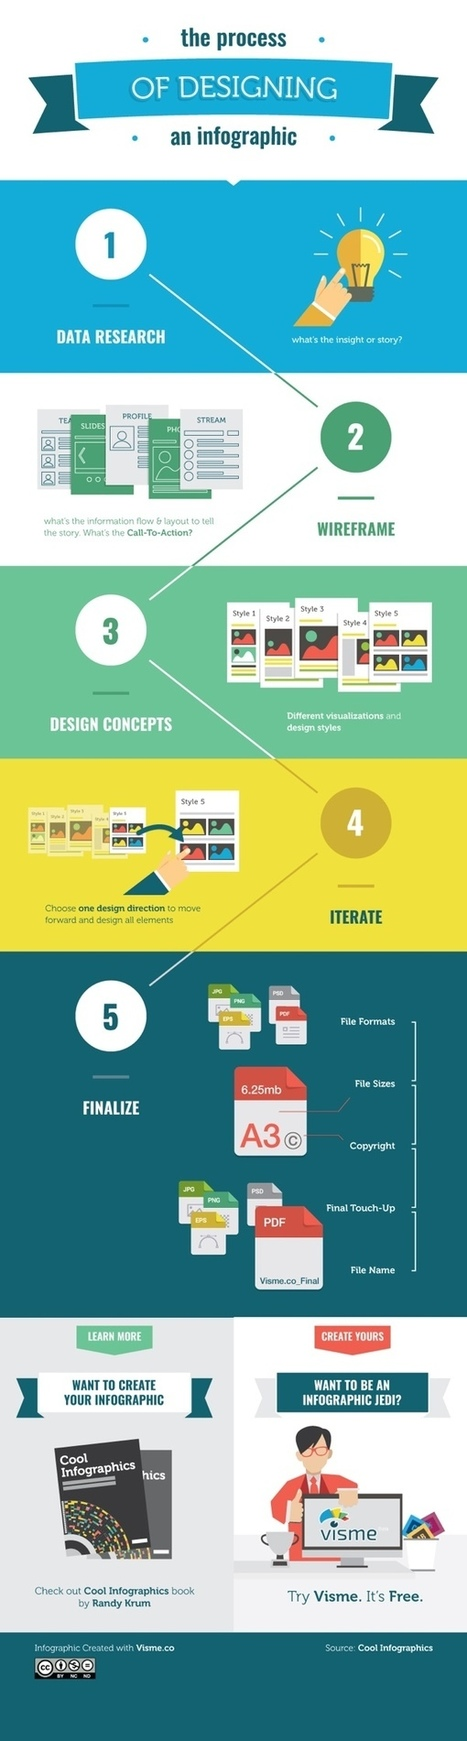 The Process of Designing an Infographic - Blog About Infographics and Data Visualization - Cool Infographics | Inbound marketing, social and SEO | Scoop.it